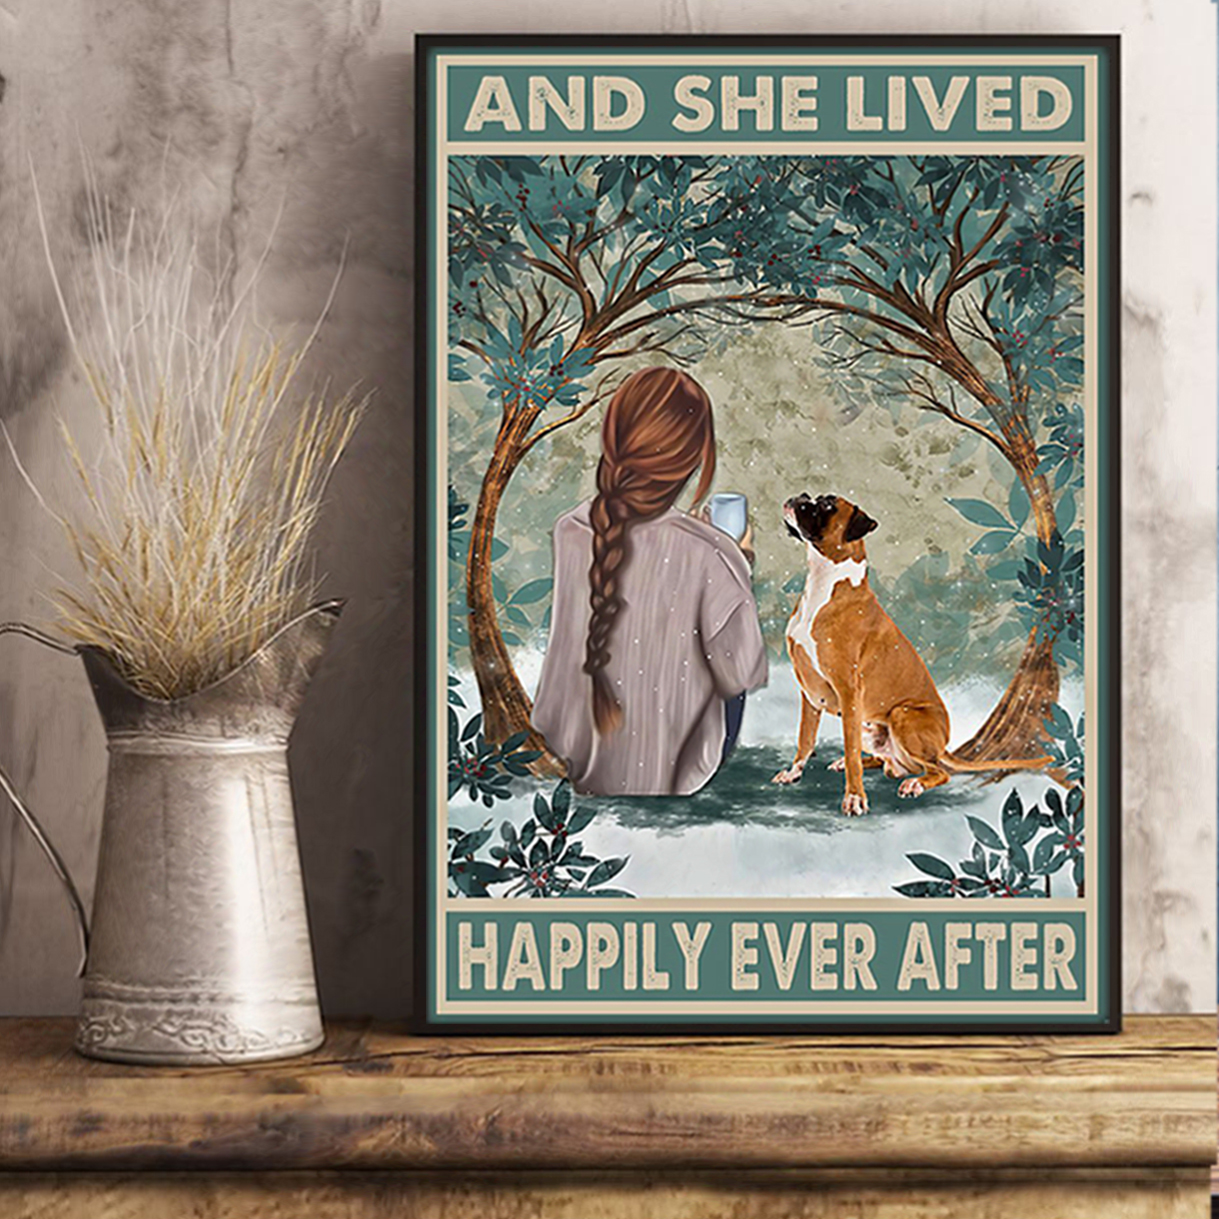 Boxer and she lived happily ever after poster A1